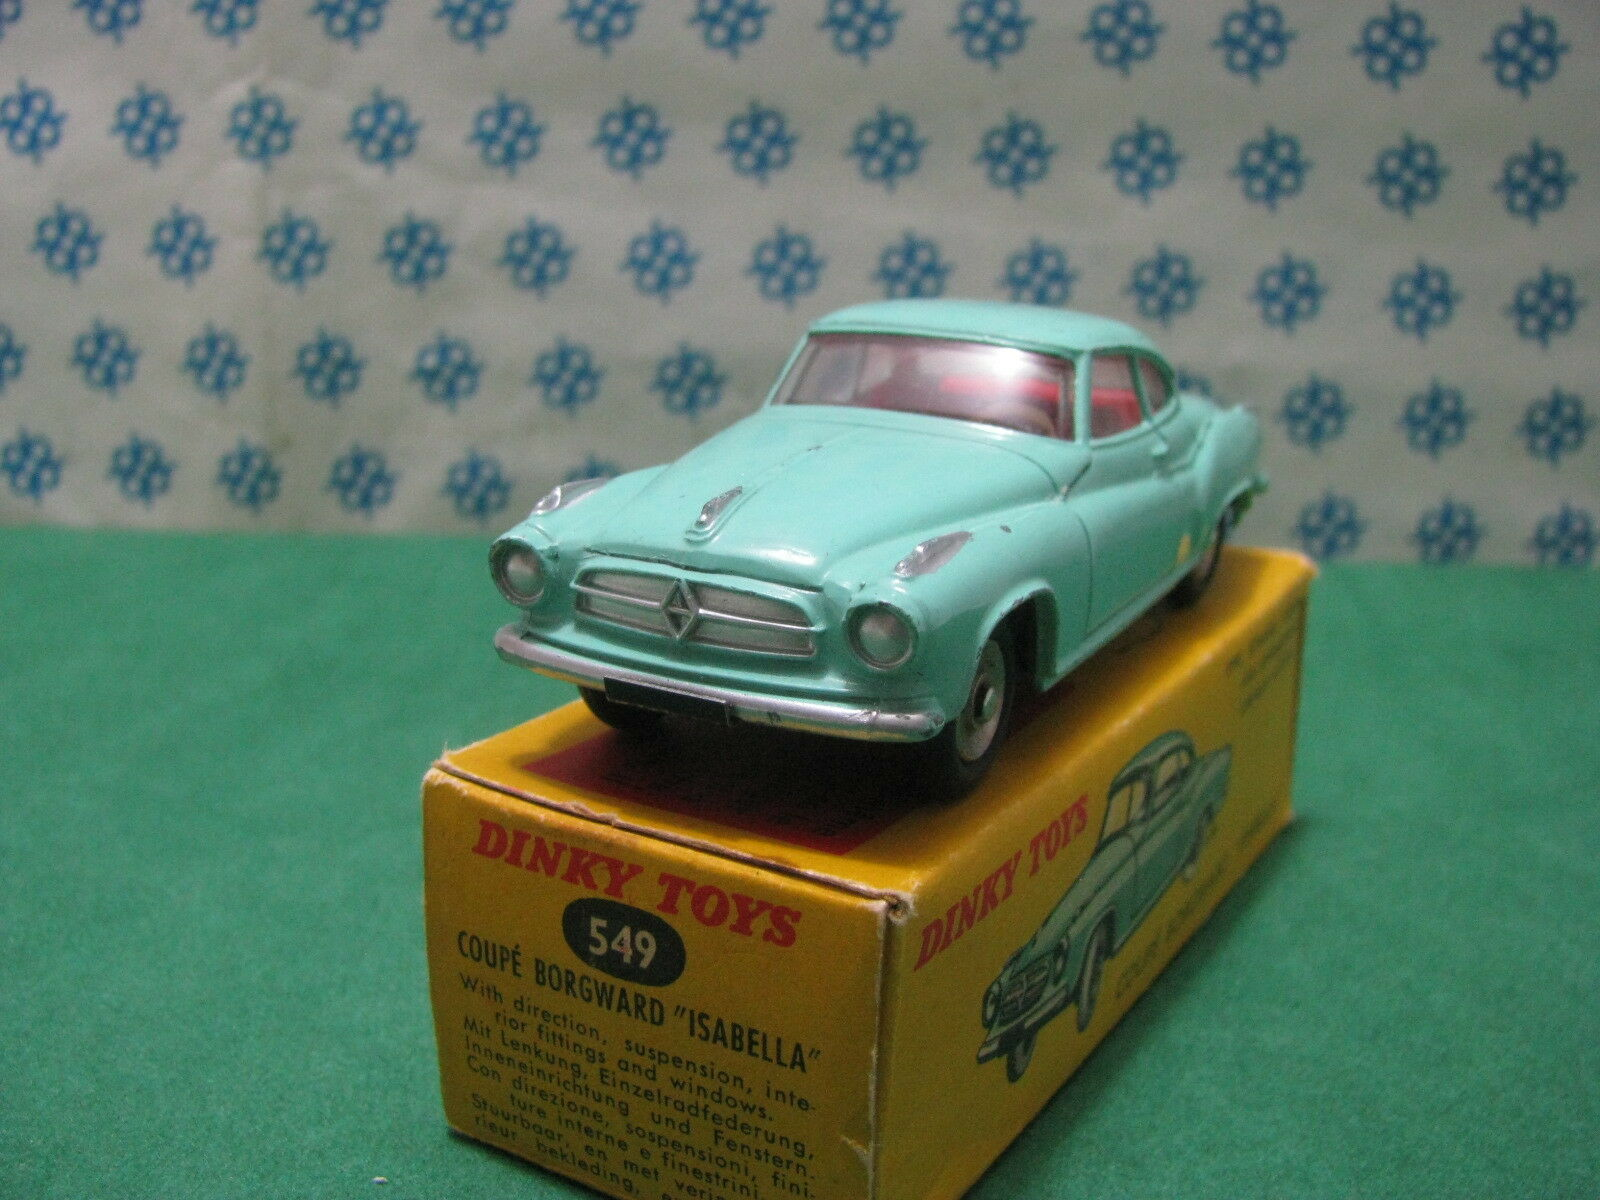 DINKY TOYS 549 - BORGWARD ISABELLA Coupe with direction